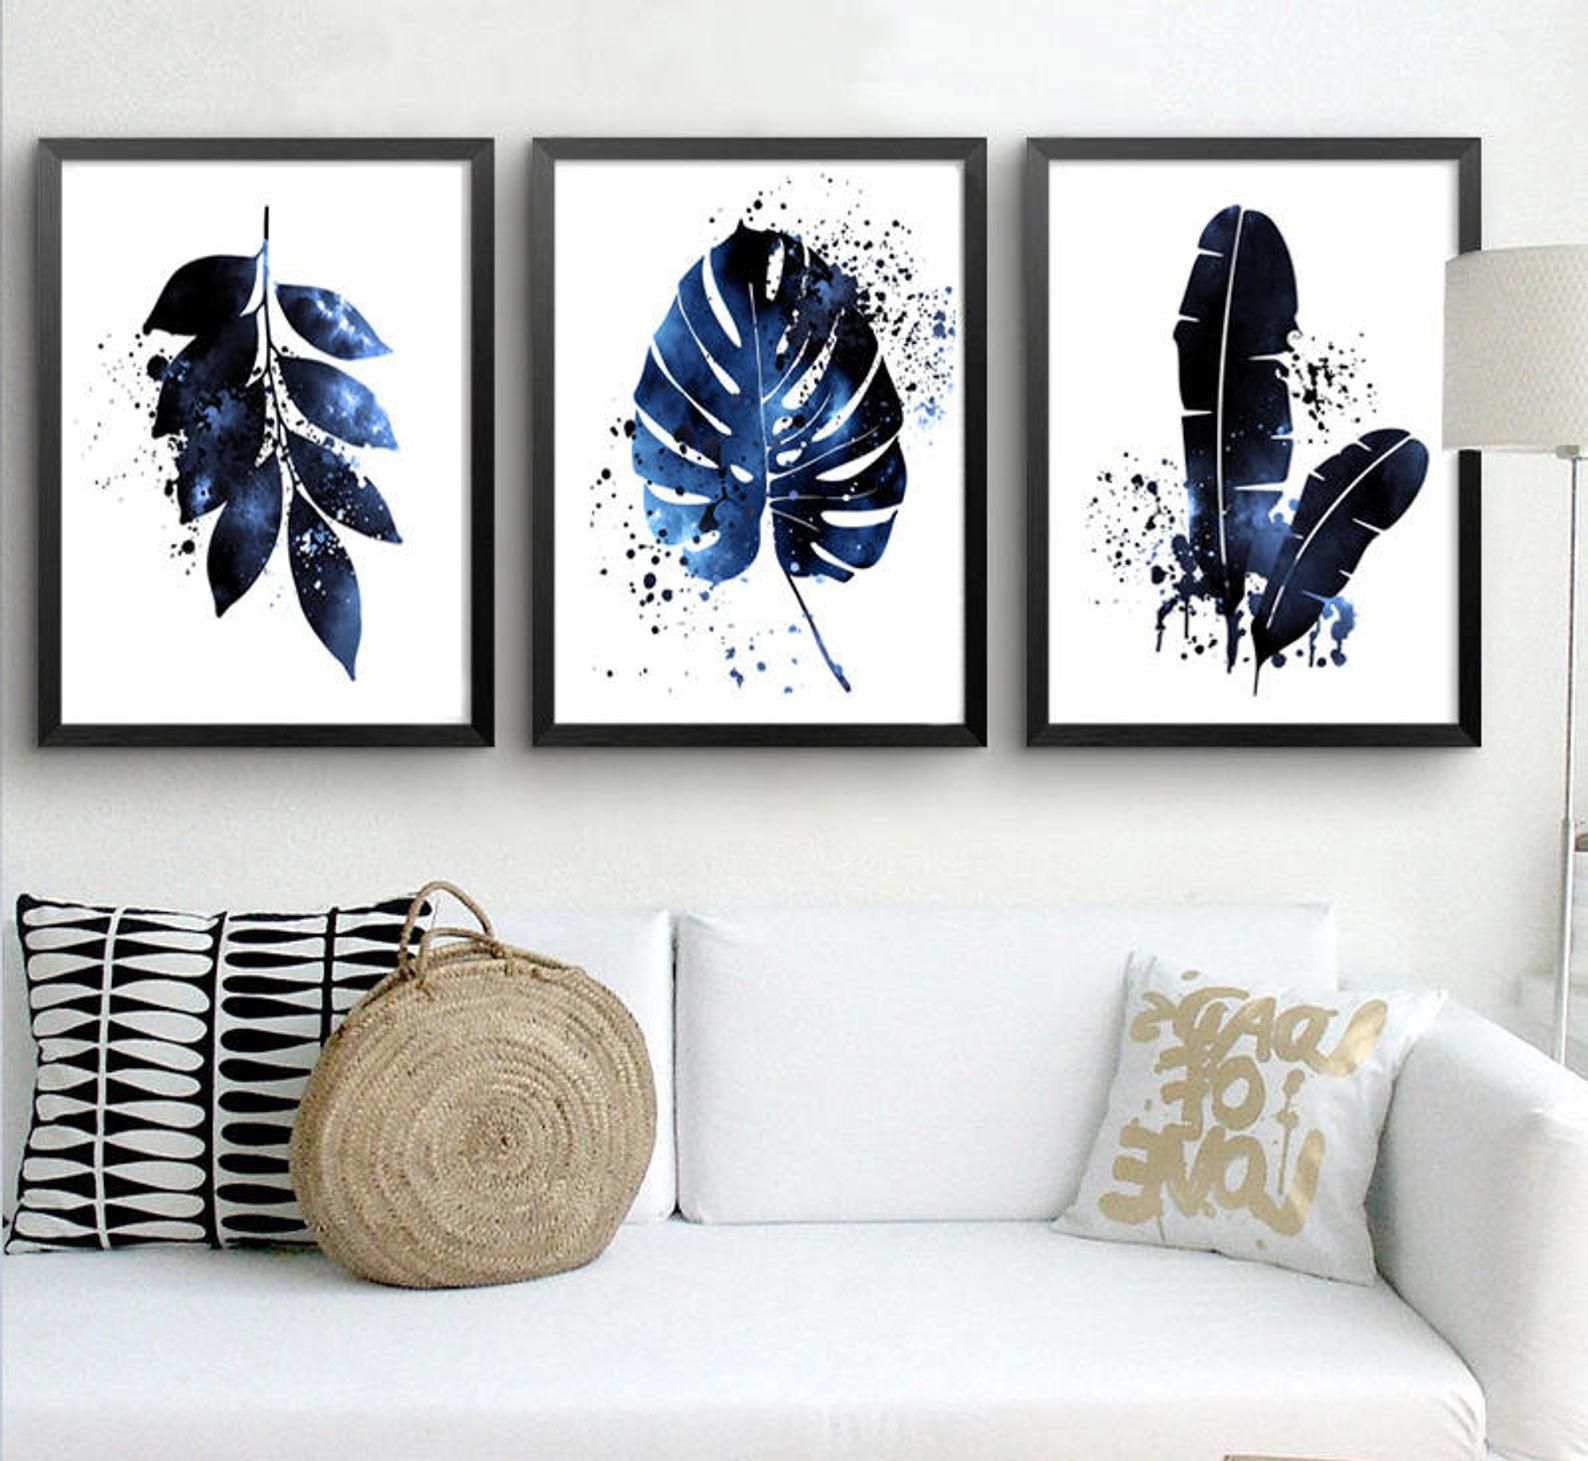 Tropical Leaf Print Set Of 3 Prints Indigo Art Leaves Painting Etsy In 2020 Leaf Art Navy Blue Wall Art Blue Wall Art